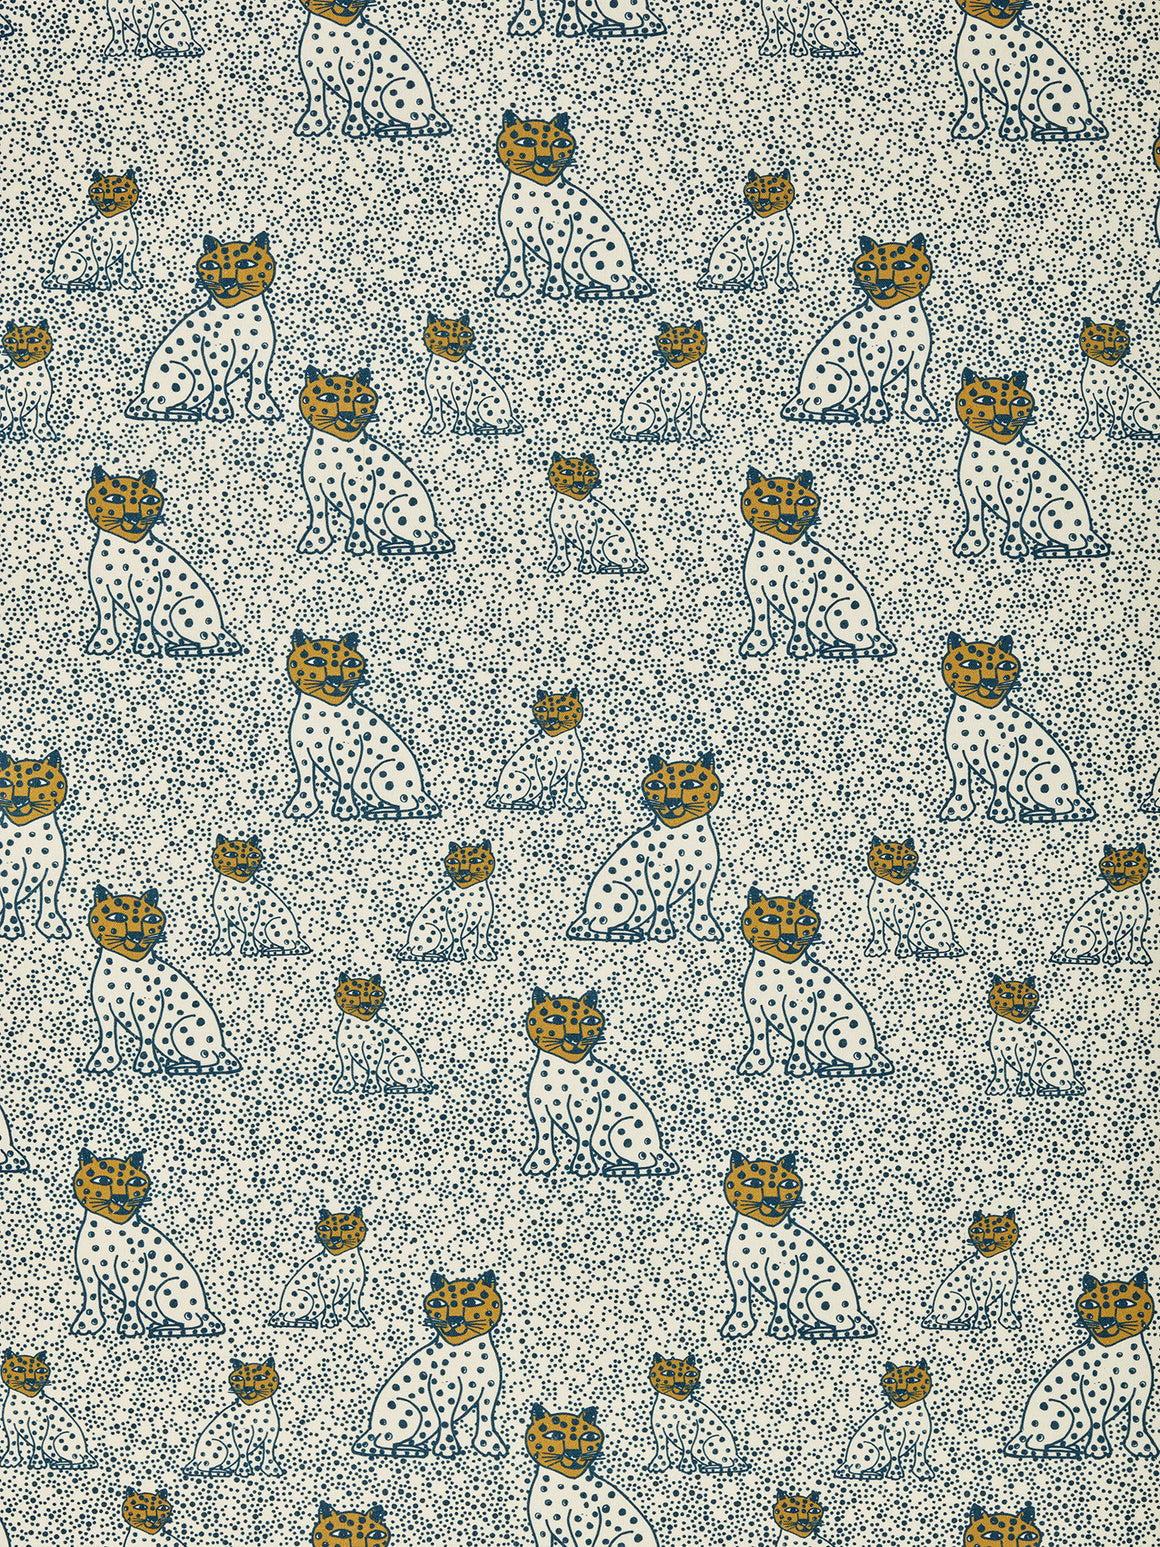 Graphic Leopard Pattern Printed Linen Cotton Canvas Fabric in Petrol Blue and Gold